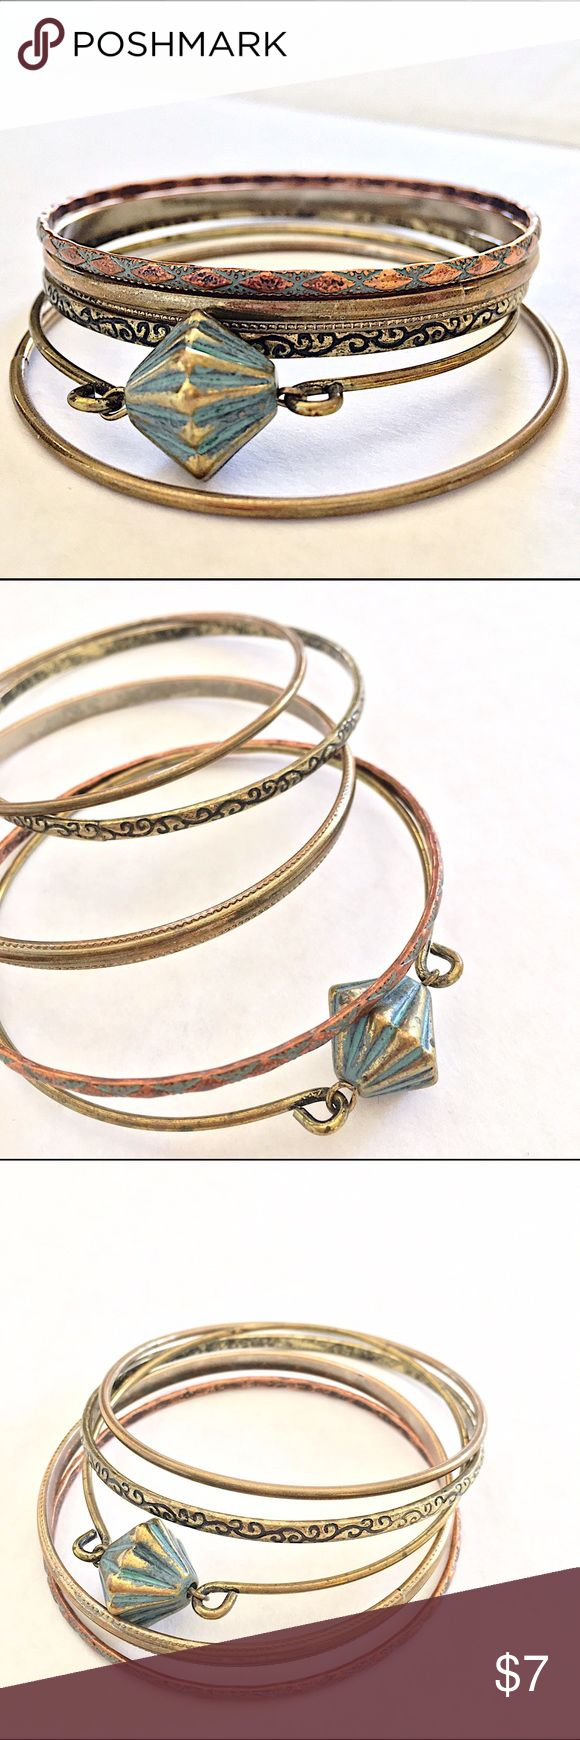 Free People Set of 5 Bangles//Bracelets Free People Set of 5 Bangles//Bracelets//Never Worn + Great Condition//Let me know if you need add'l info or pics✌ Free People Jewelry Bracelets